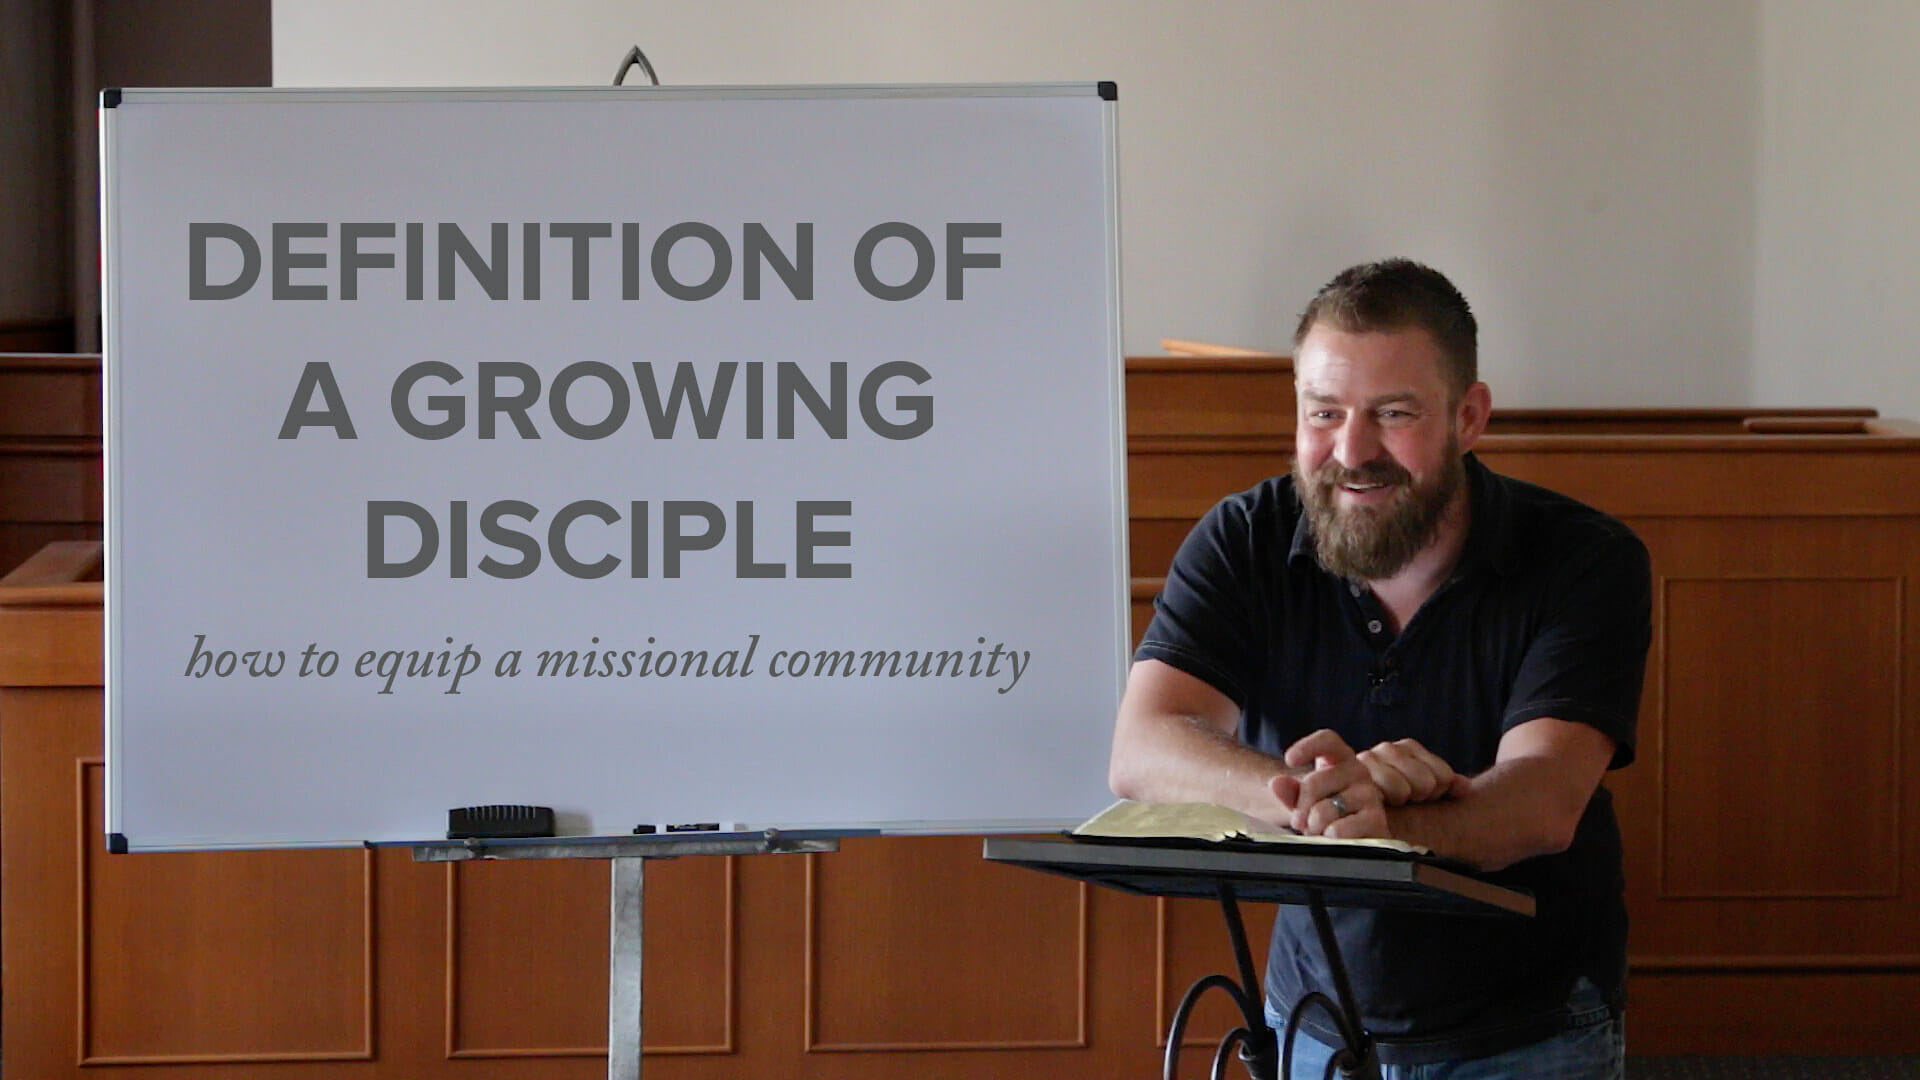 definition of a growing disciple saturate as we think about how to form and lead missional communities how do we define discipleship and what it means to be a disciple jeff vanderstelt defines a